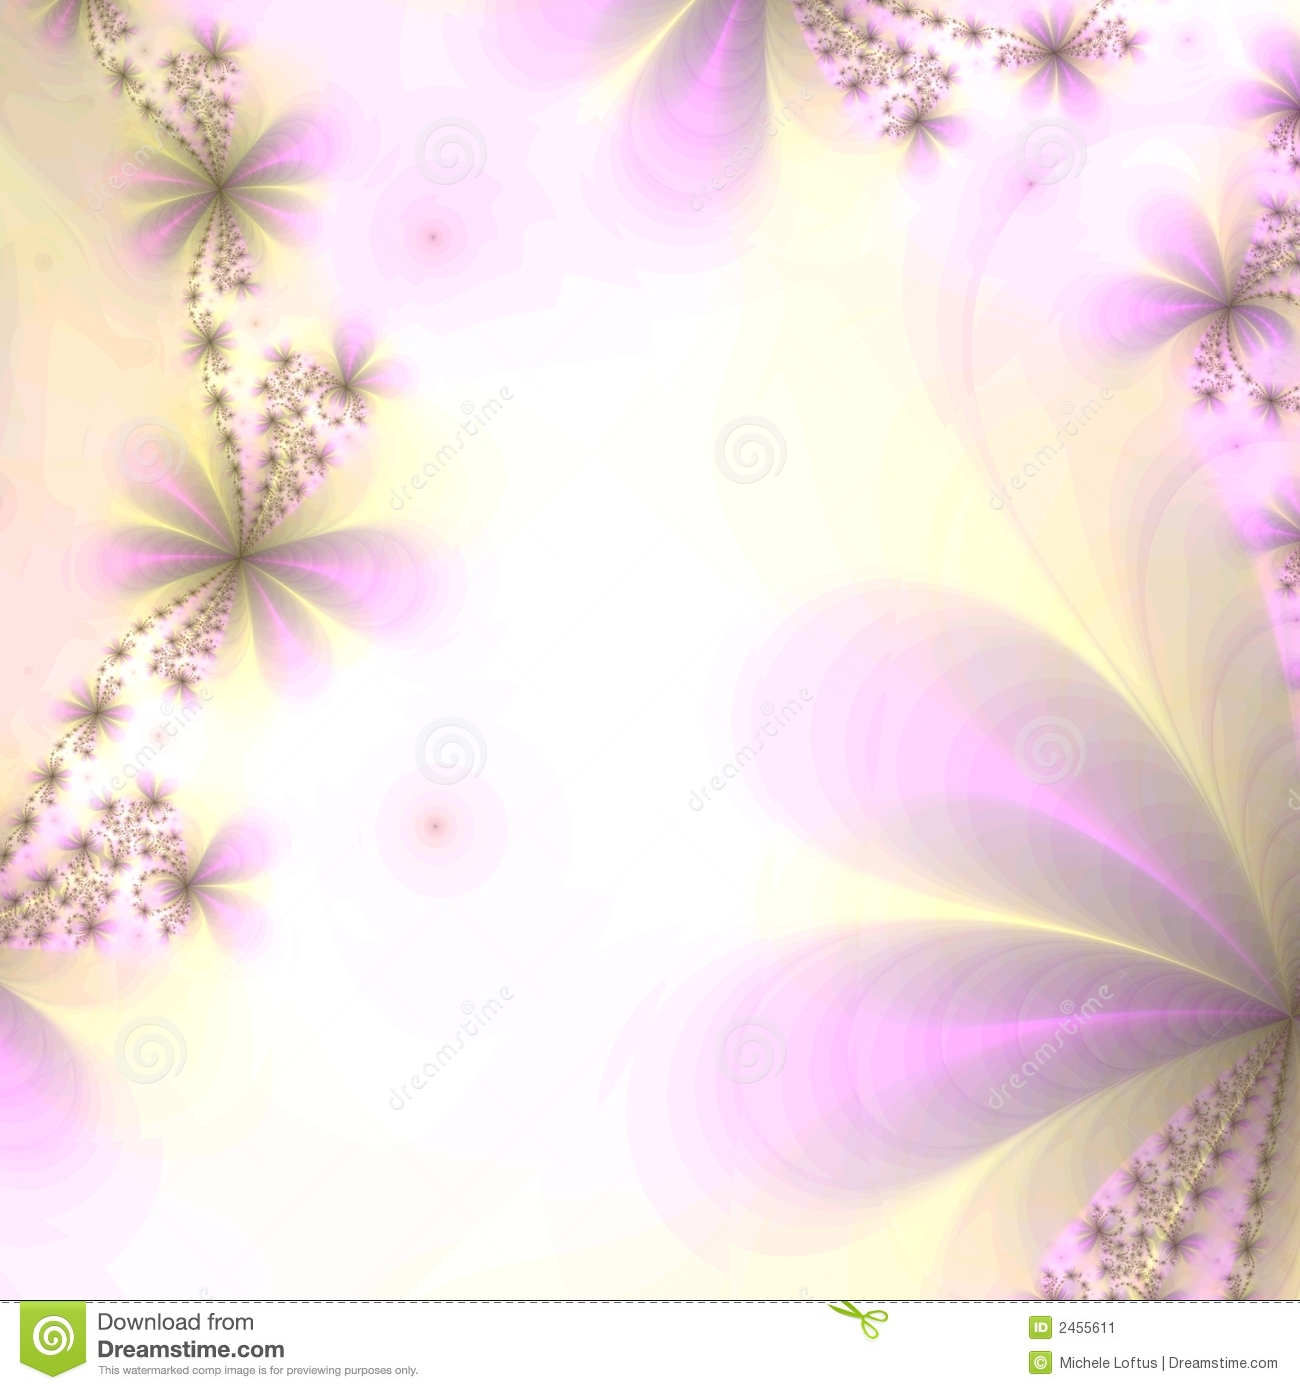 Background in Violet and Gold